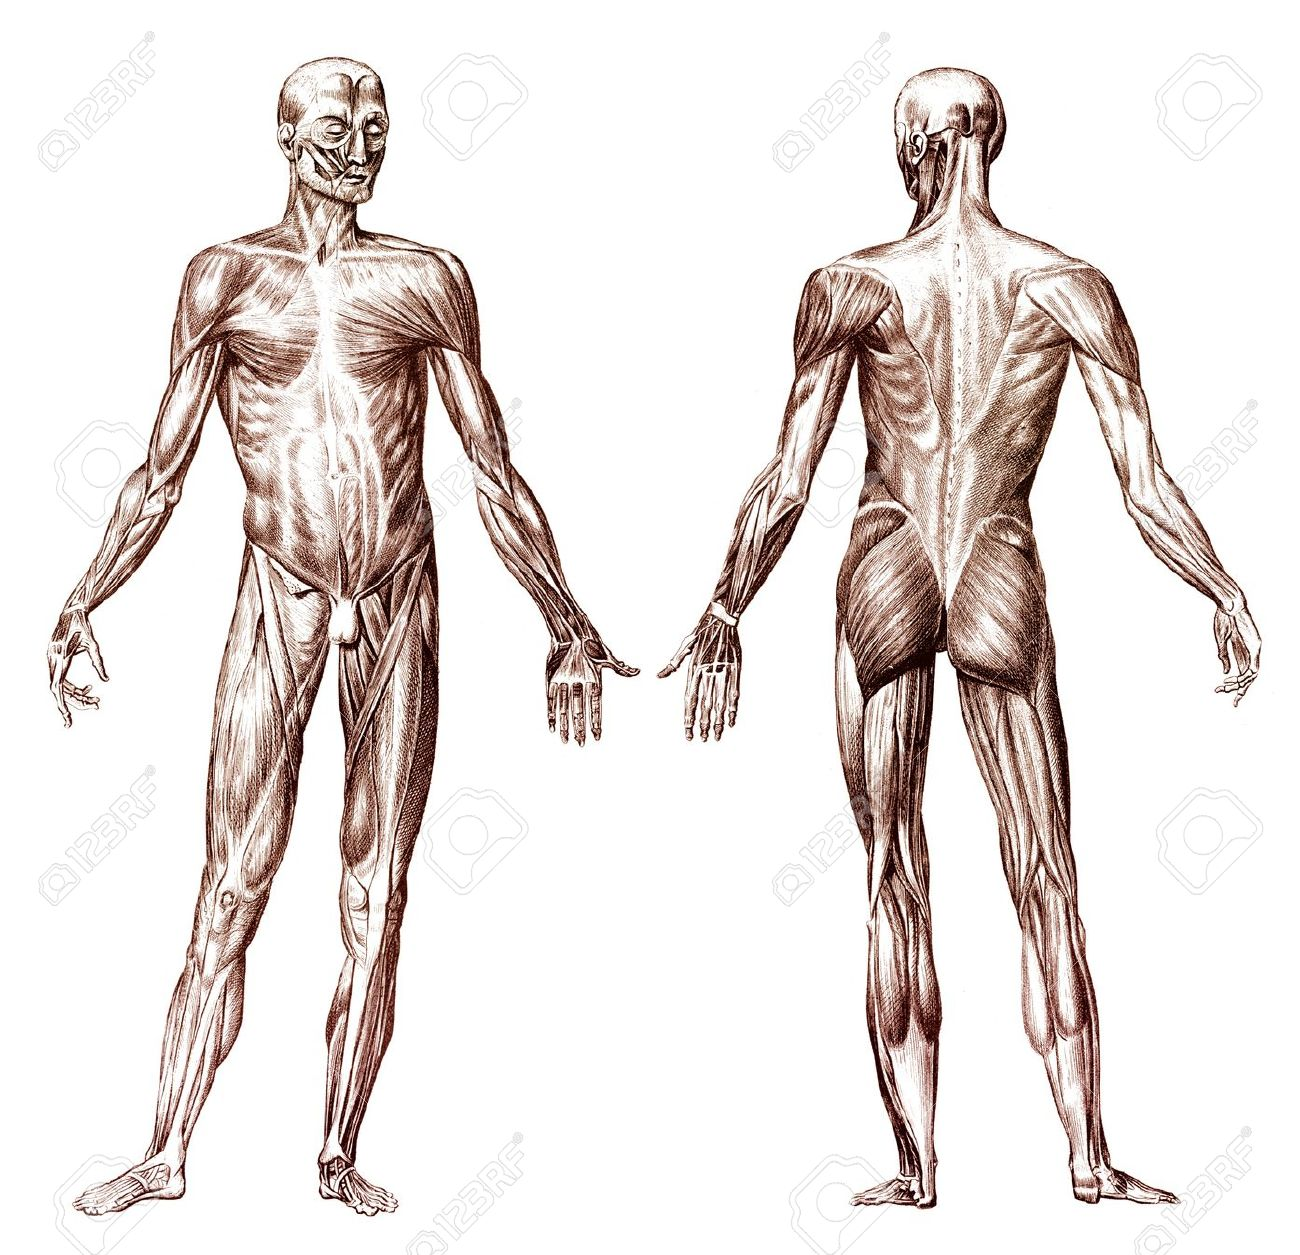 old engraving of human anatomy muscular system stock photo, Muscles